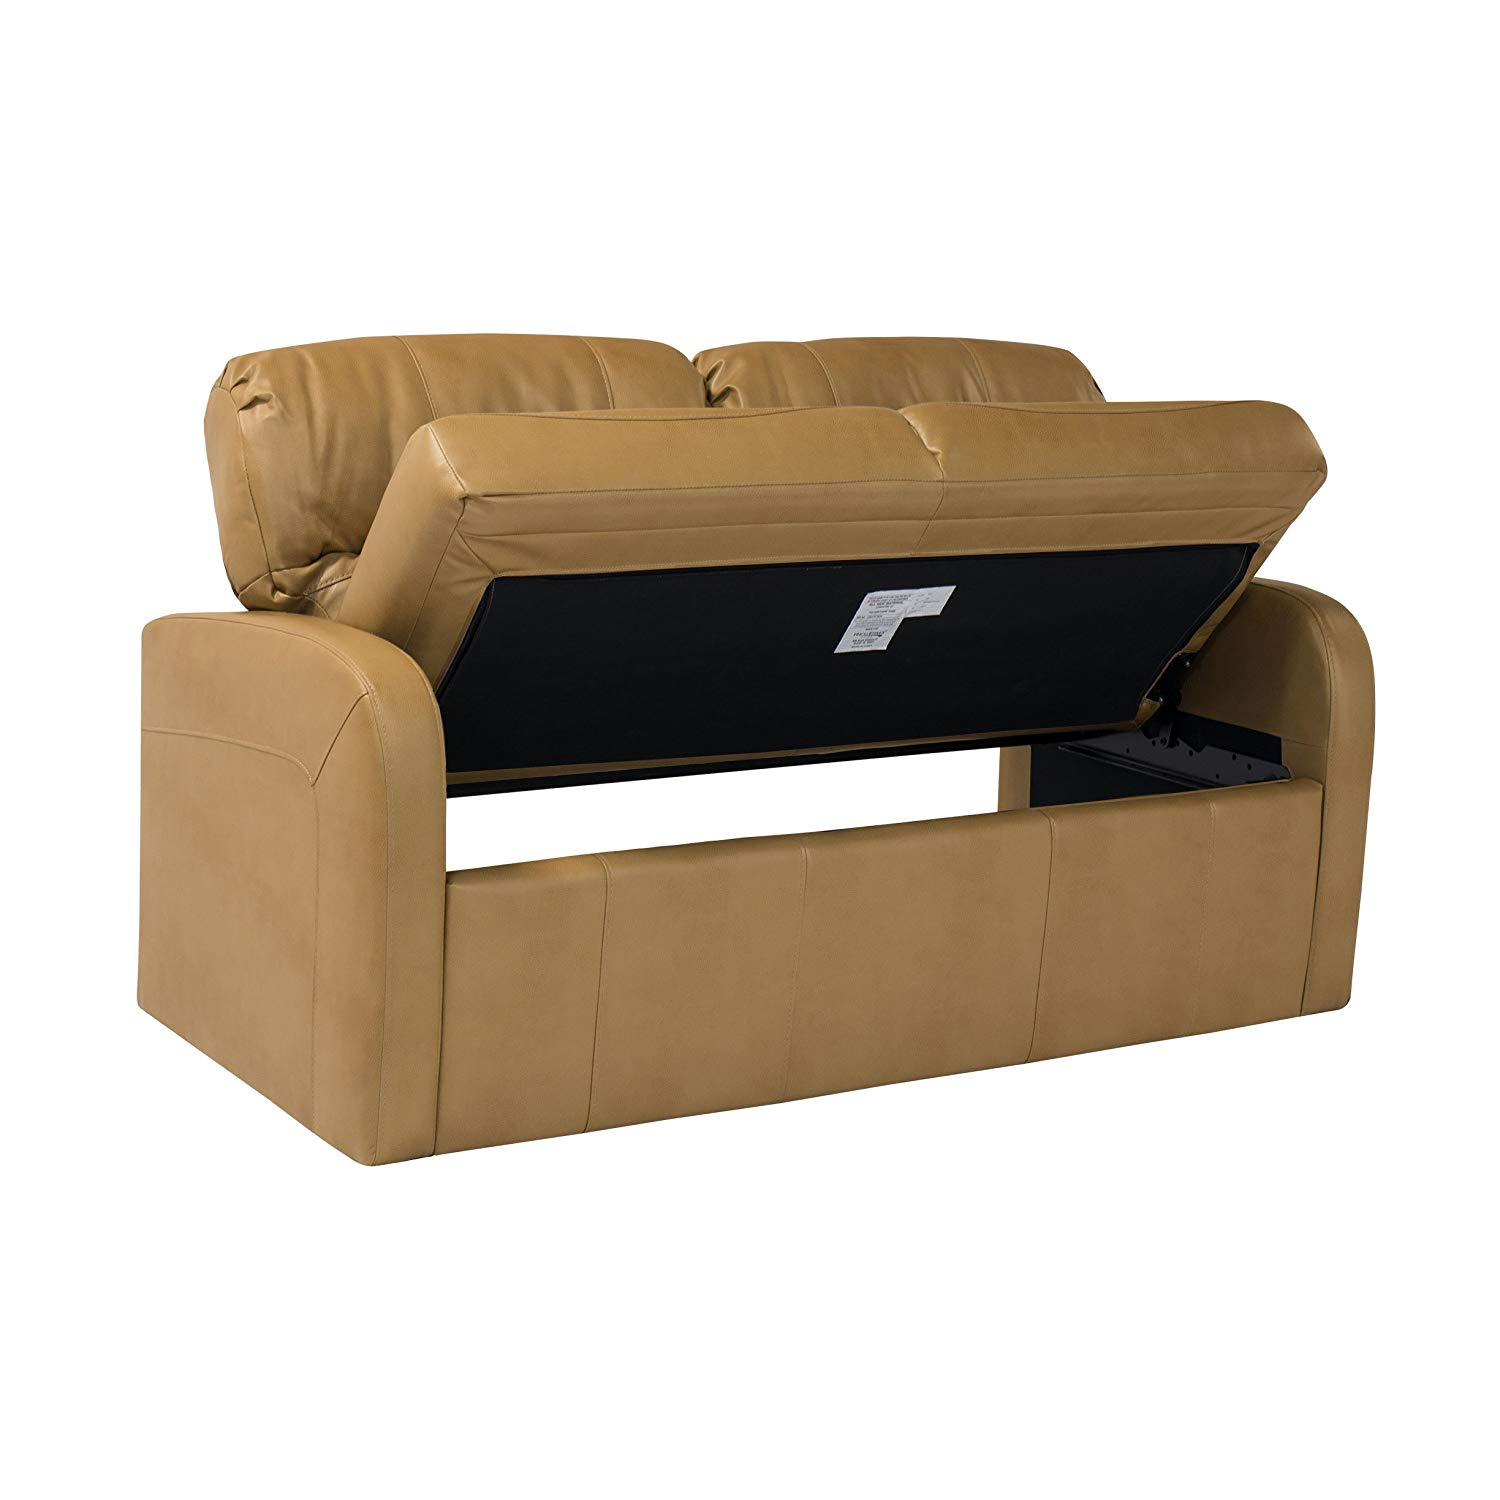 - RV Sofa & RV Sofa Sleepers - Don't Buy One Until You Read This